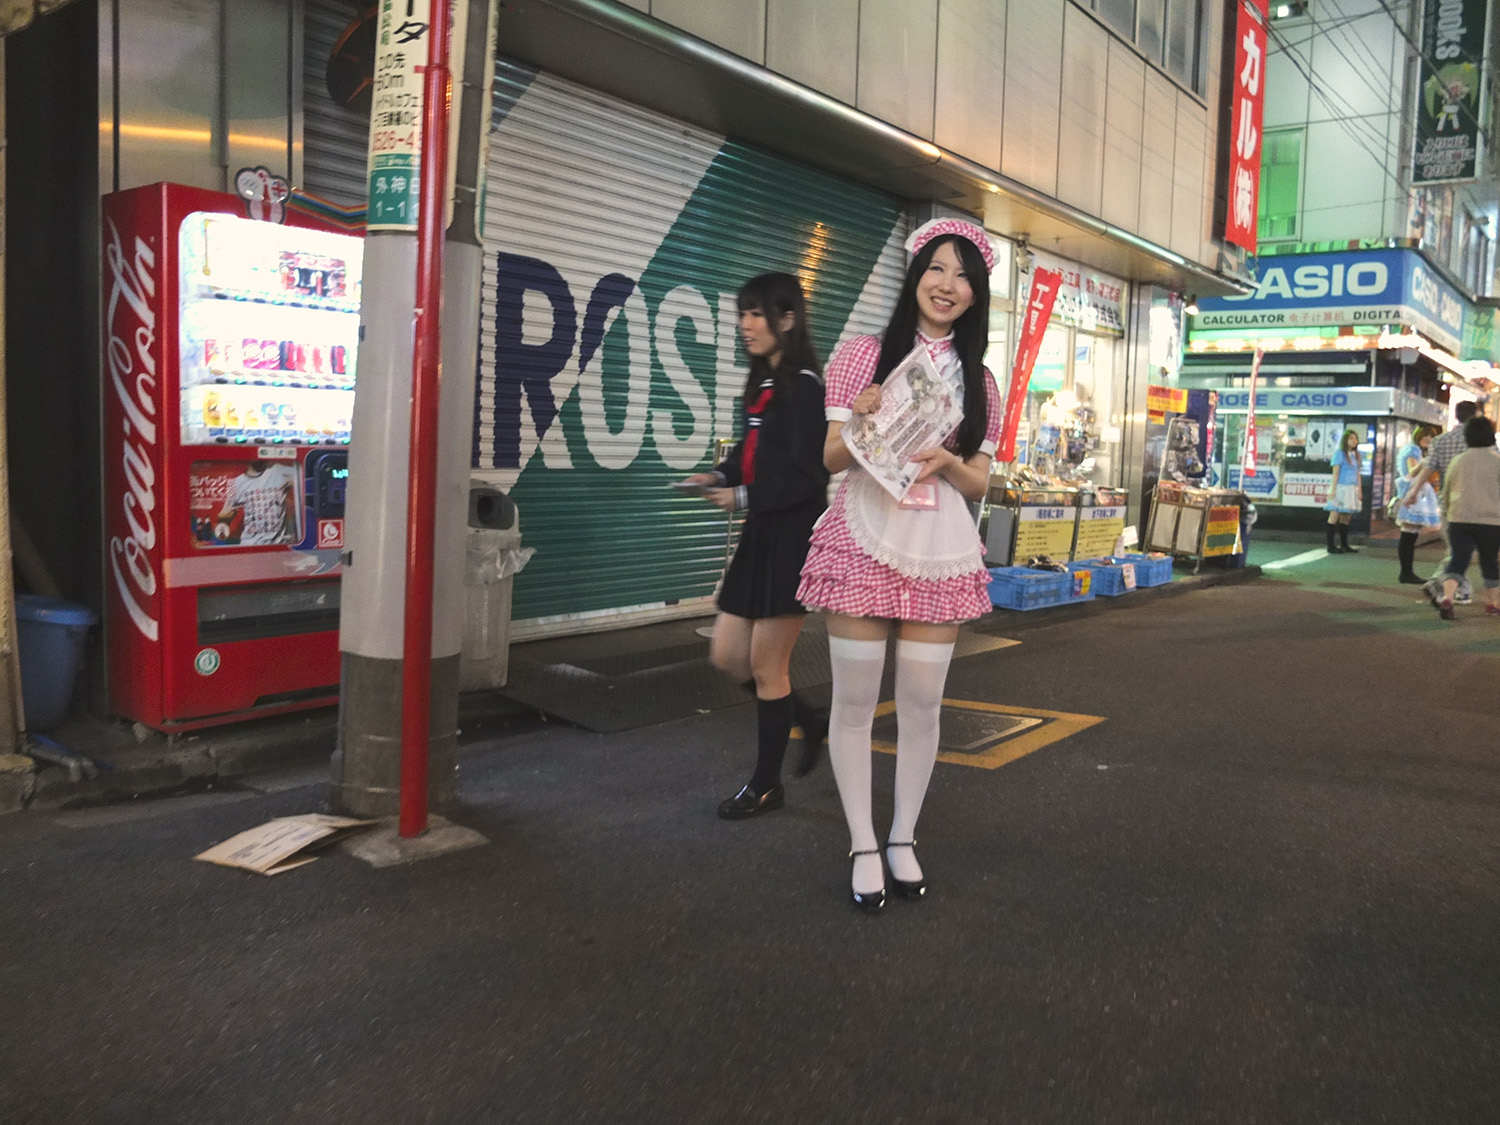 Akihabara  (秋葉原). A location very popular to those who love anime, manga and video games. Many maids will try to get you to go to their maid cafe.